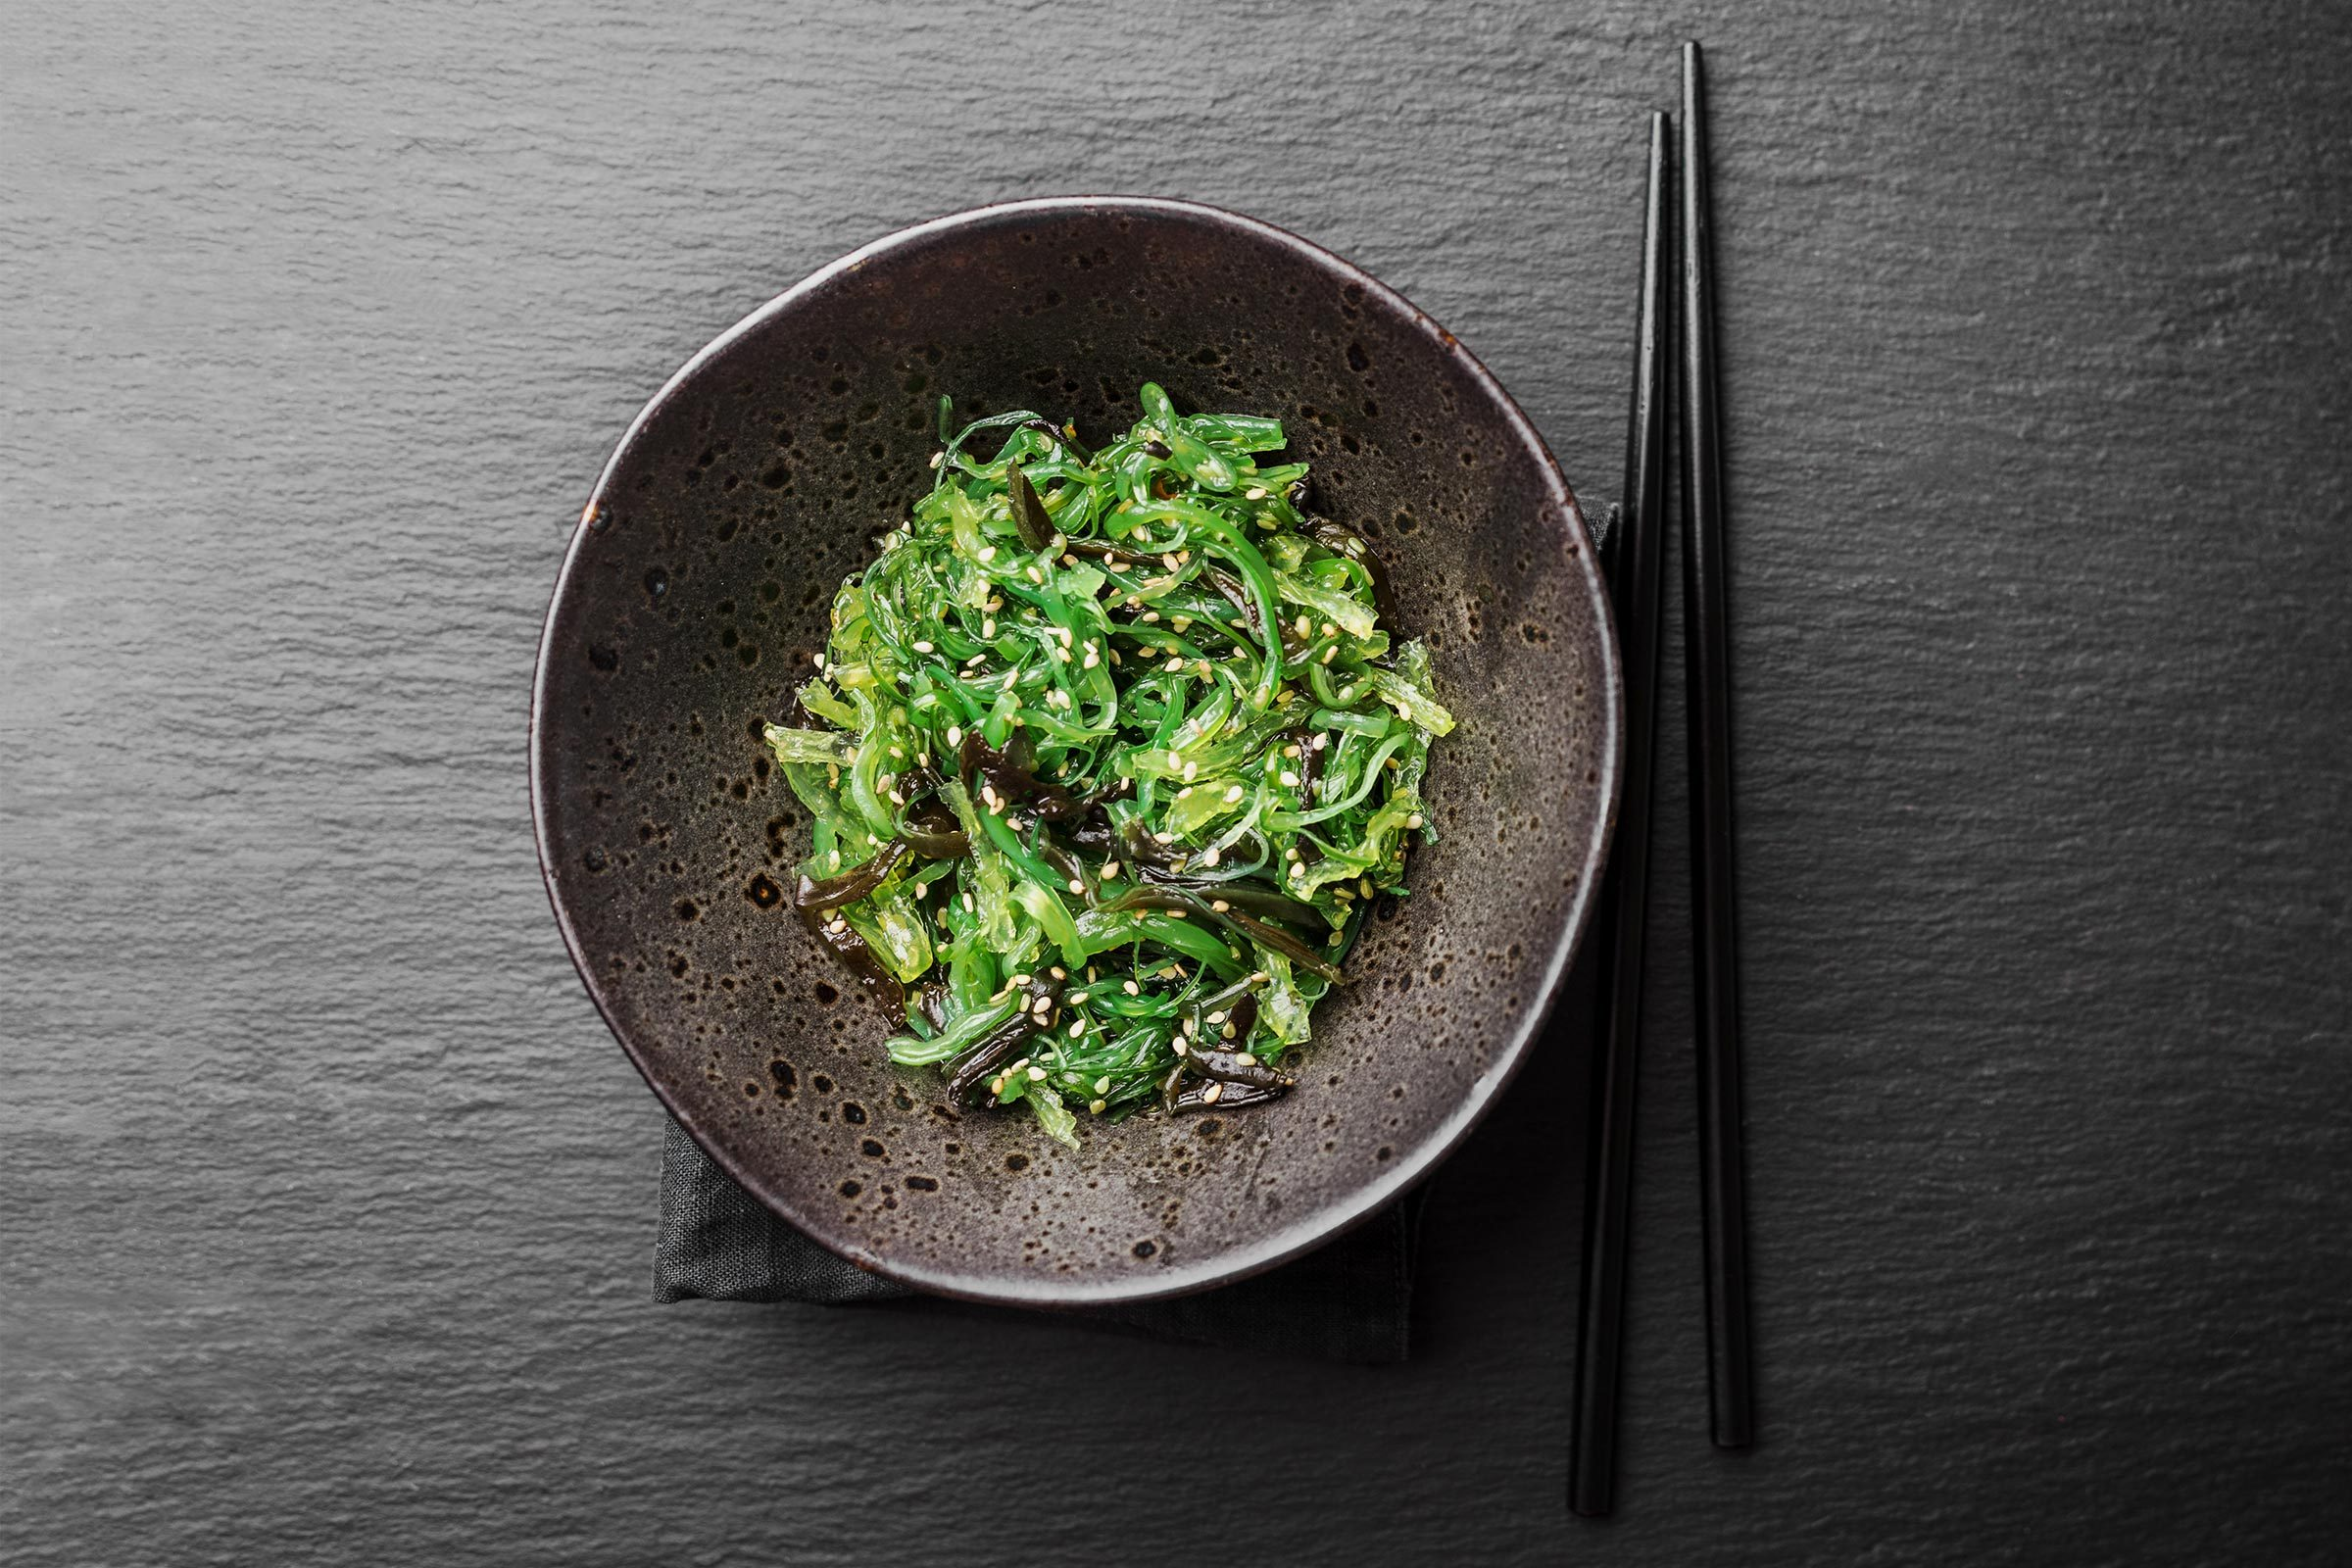 Tasty appetizing seaweed salad on dark plate on slate background. Horizontal with copy space